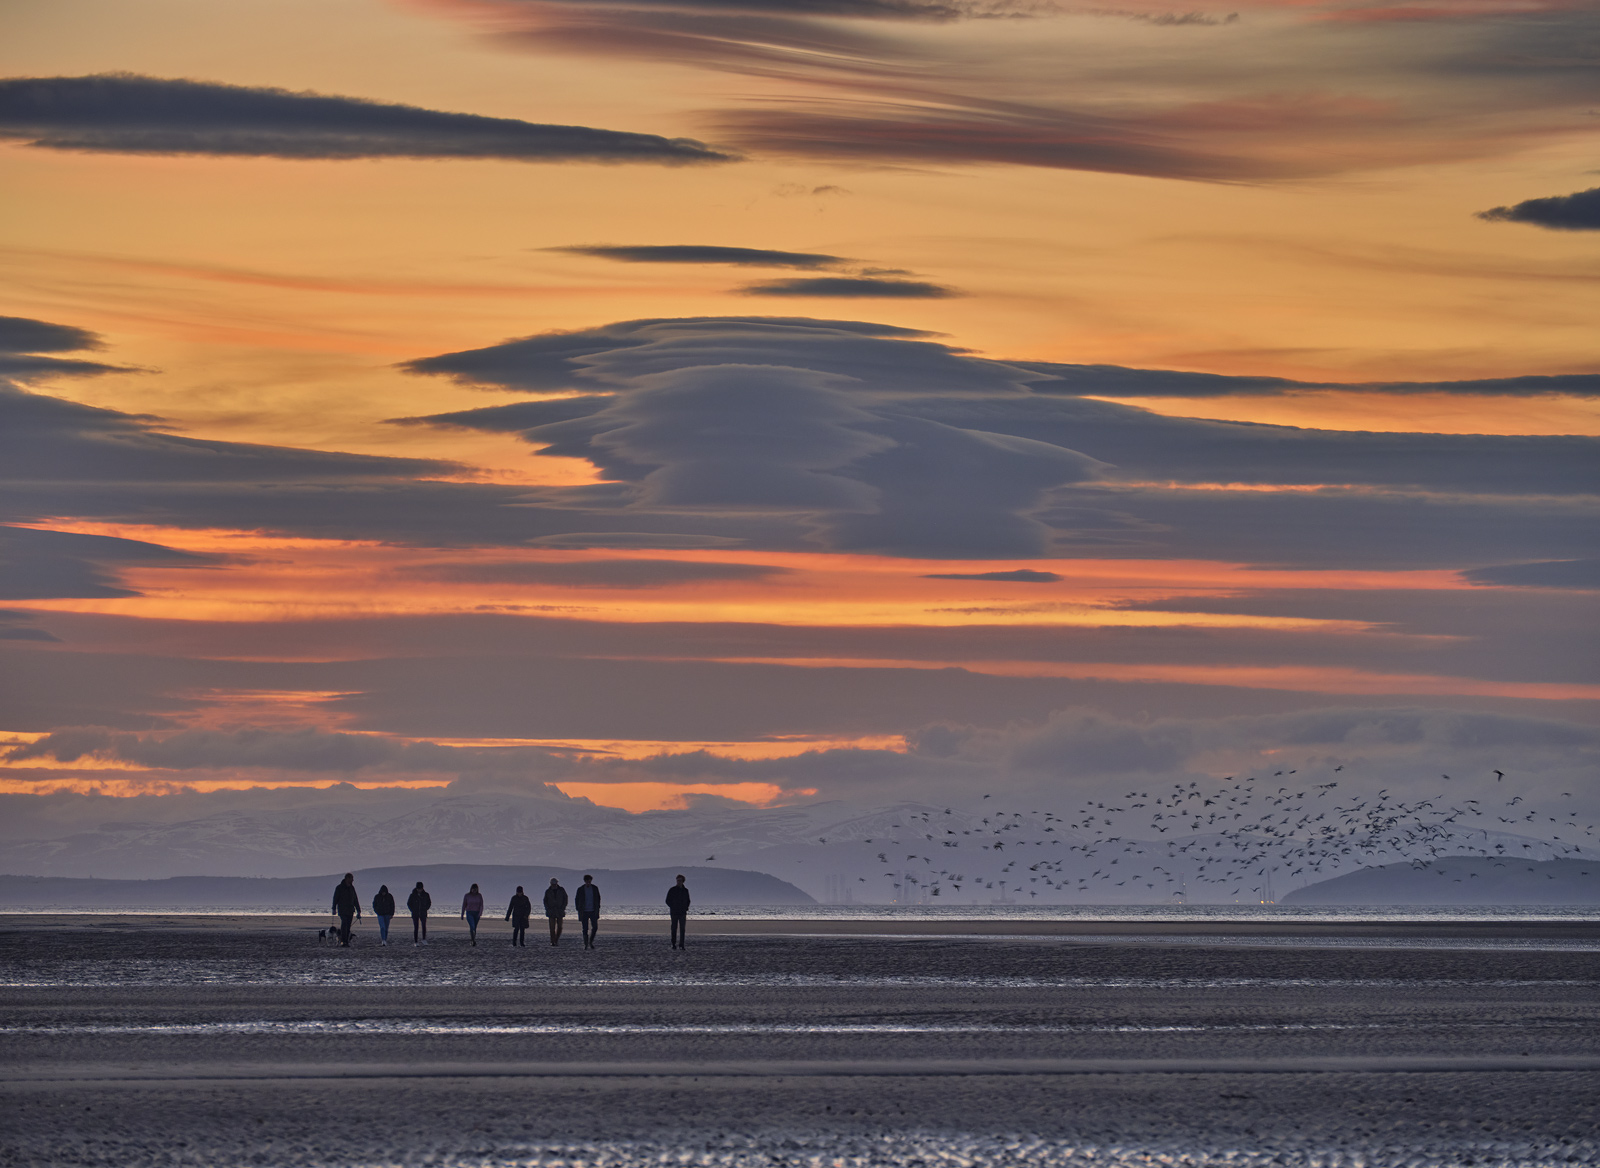 We have had a few epic sunsets and cloud formations forming over the Findhorn estuary in the direction of Inverness lately so...